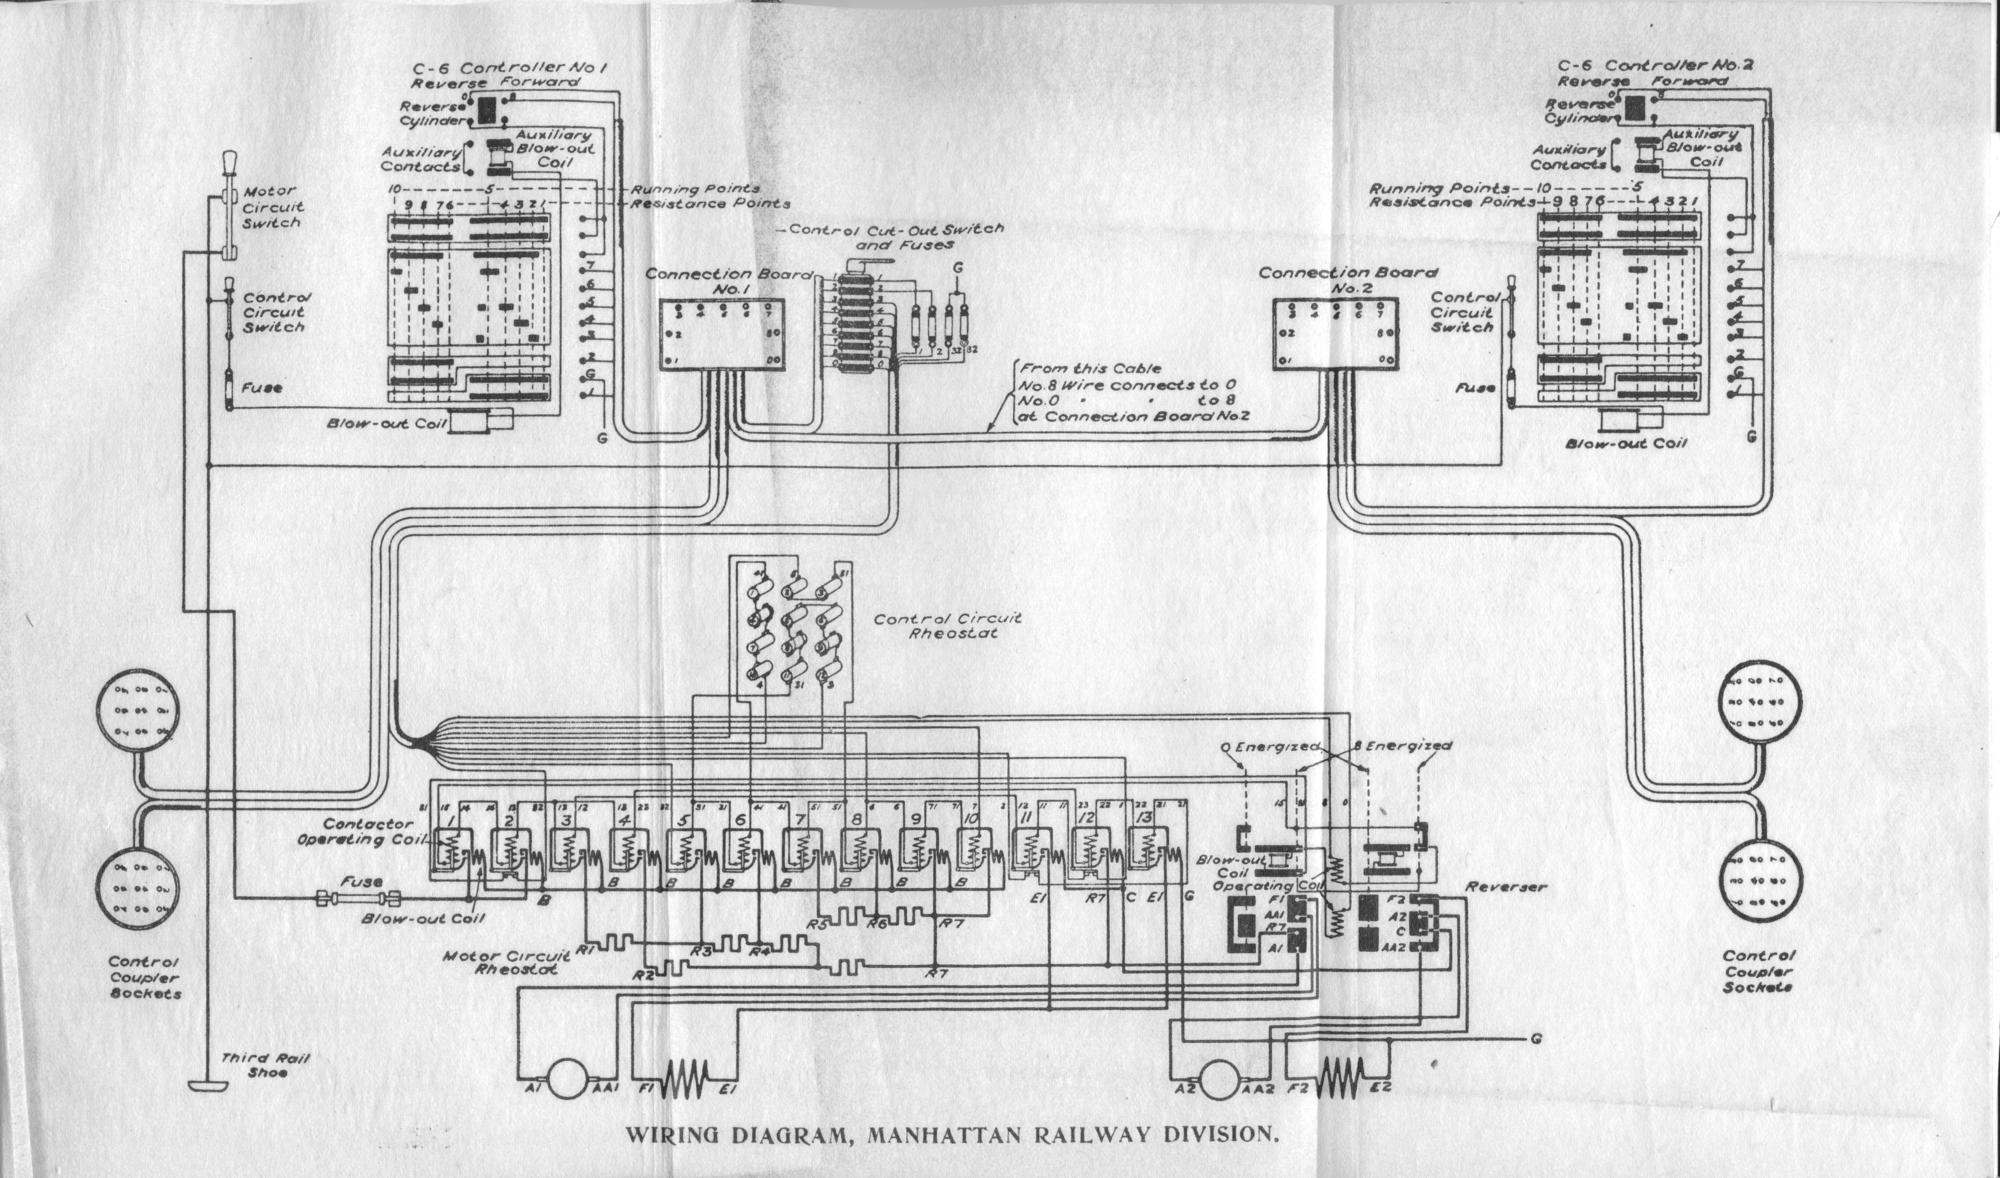 Electrical And Automatic Air Brake Equipment Forward Reverse Motor Wiring Diagram Furthermore Manhattan Railway Division